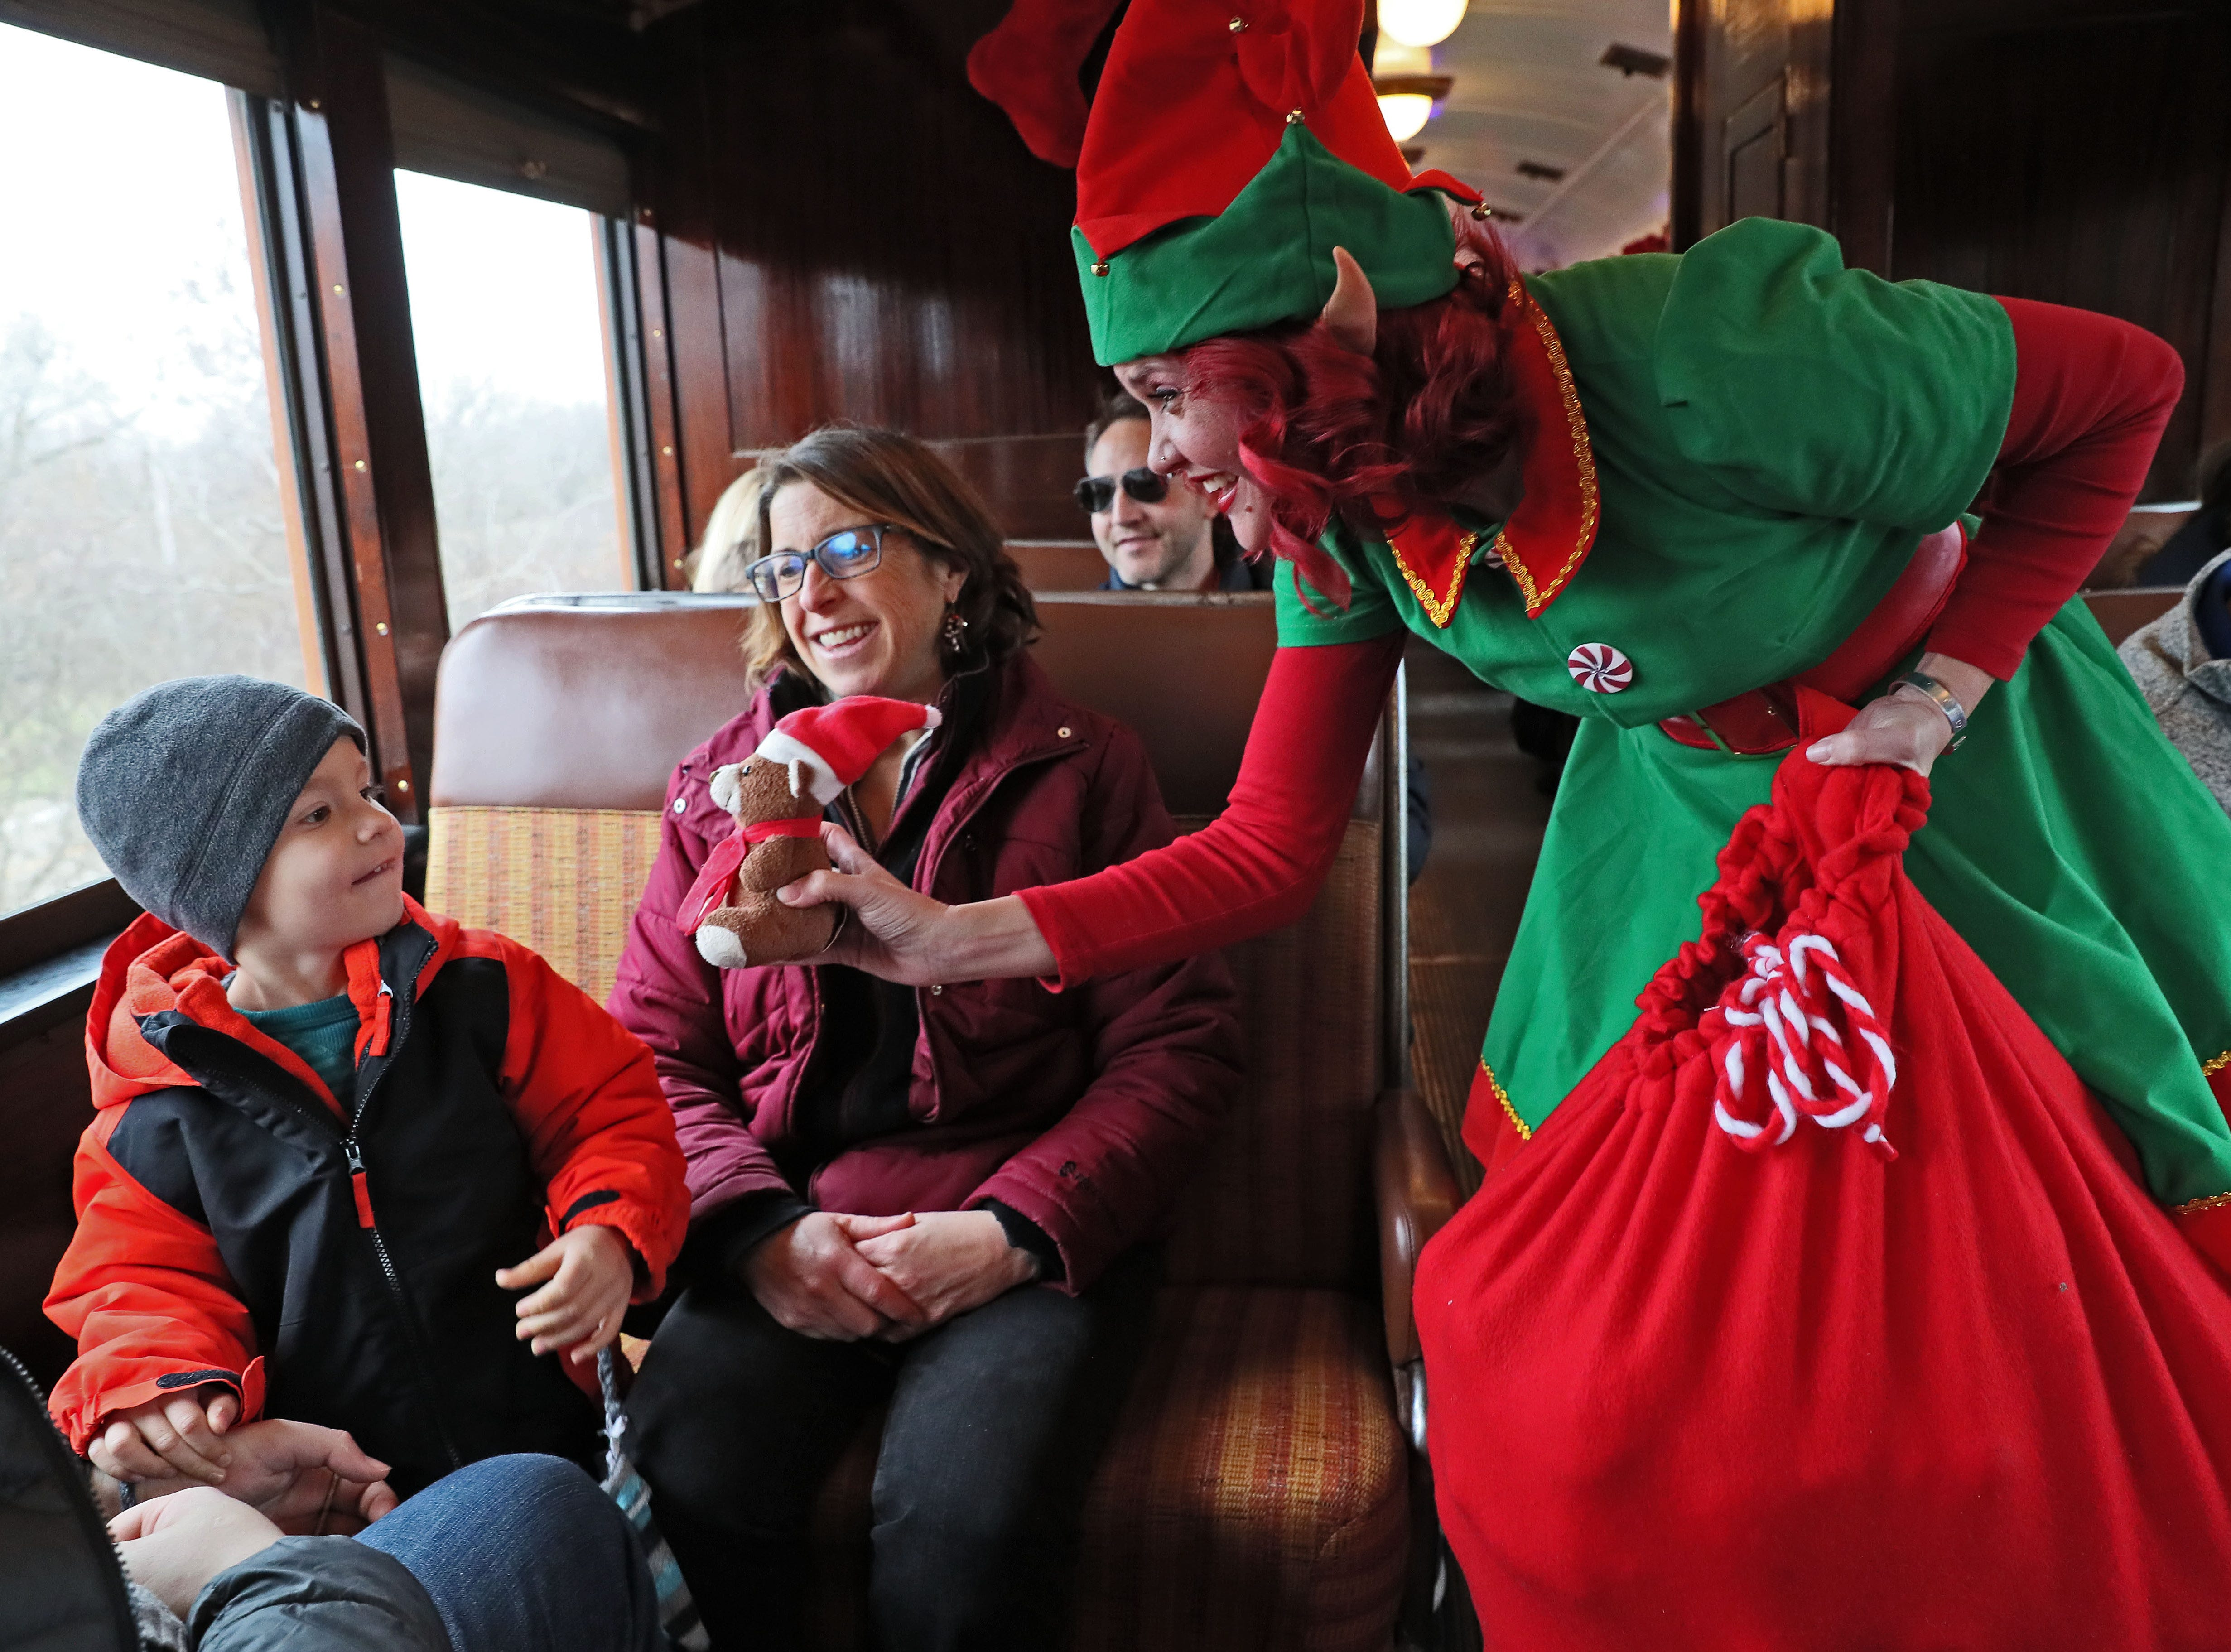 Anna Gleason, Santa's elf, offers a stuffed animal from her gift bag to Aidan Puczylowski, 3, of Milwaukee as his grandmother Laurie Due of Milwaukee looks on.